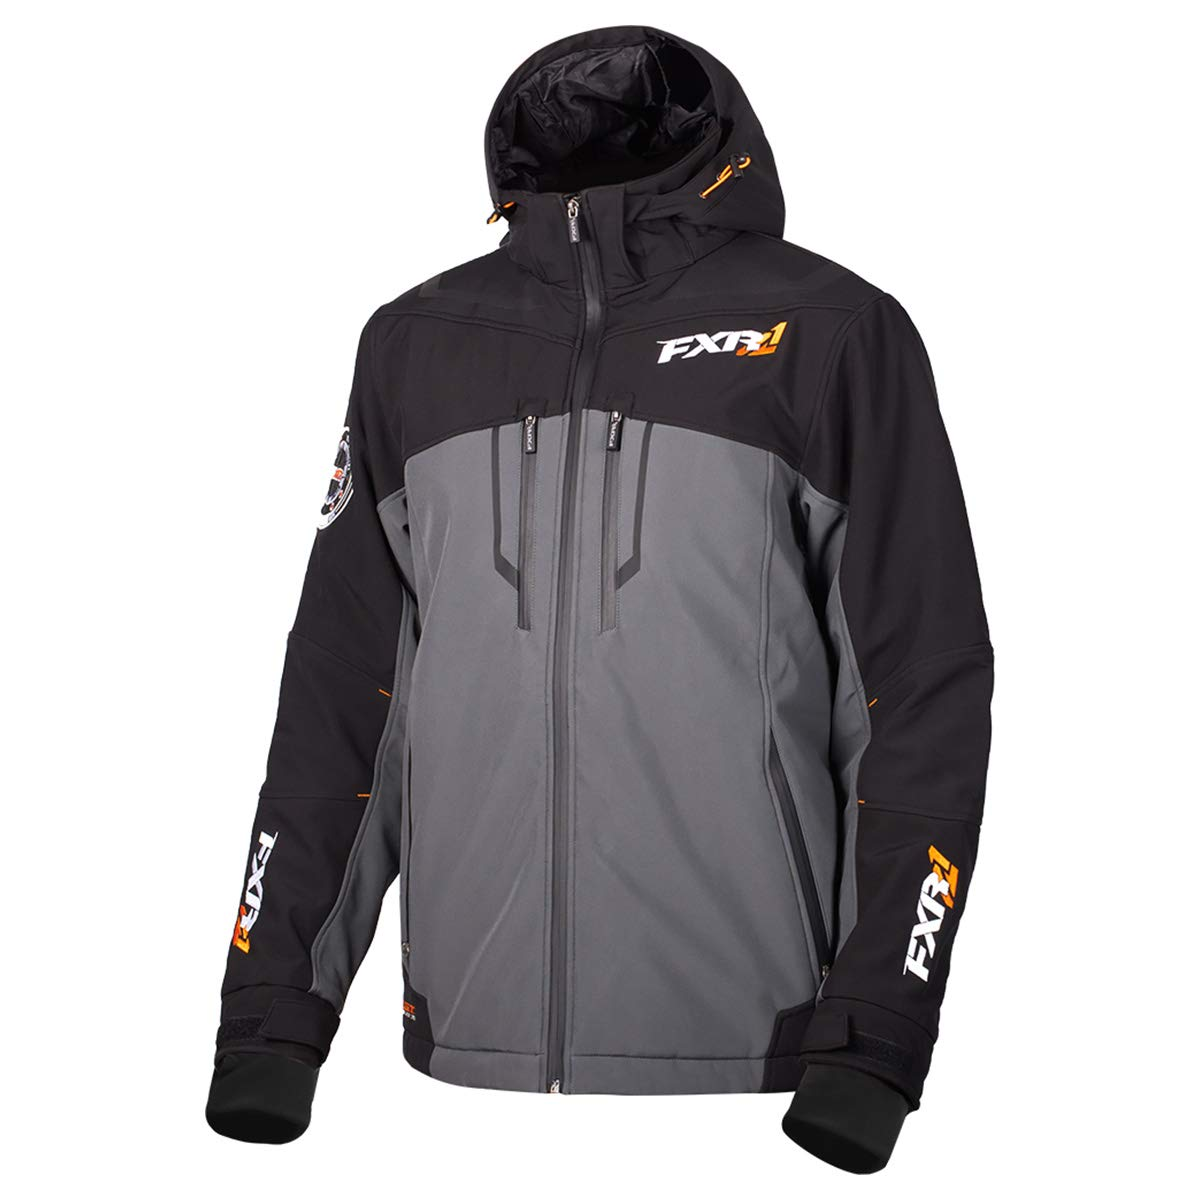 FXR Mens Vertical Pro Insulated Softshell Jacket Charcoalcoal//Black, Medium